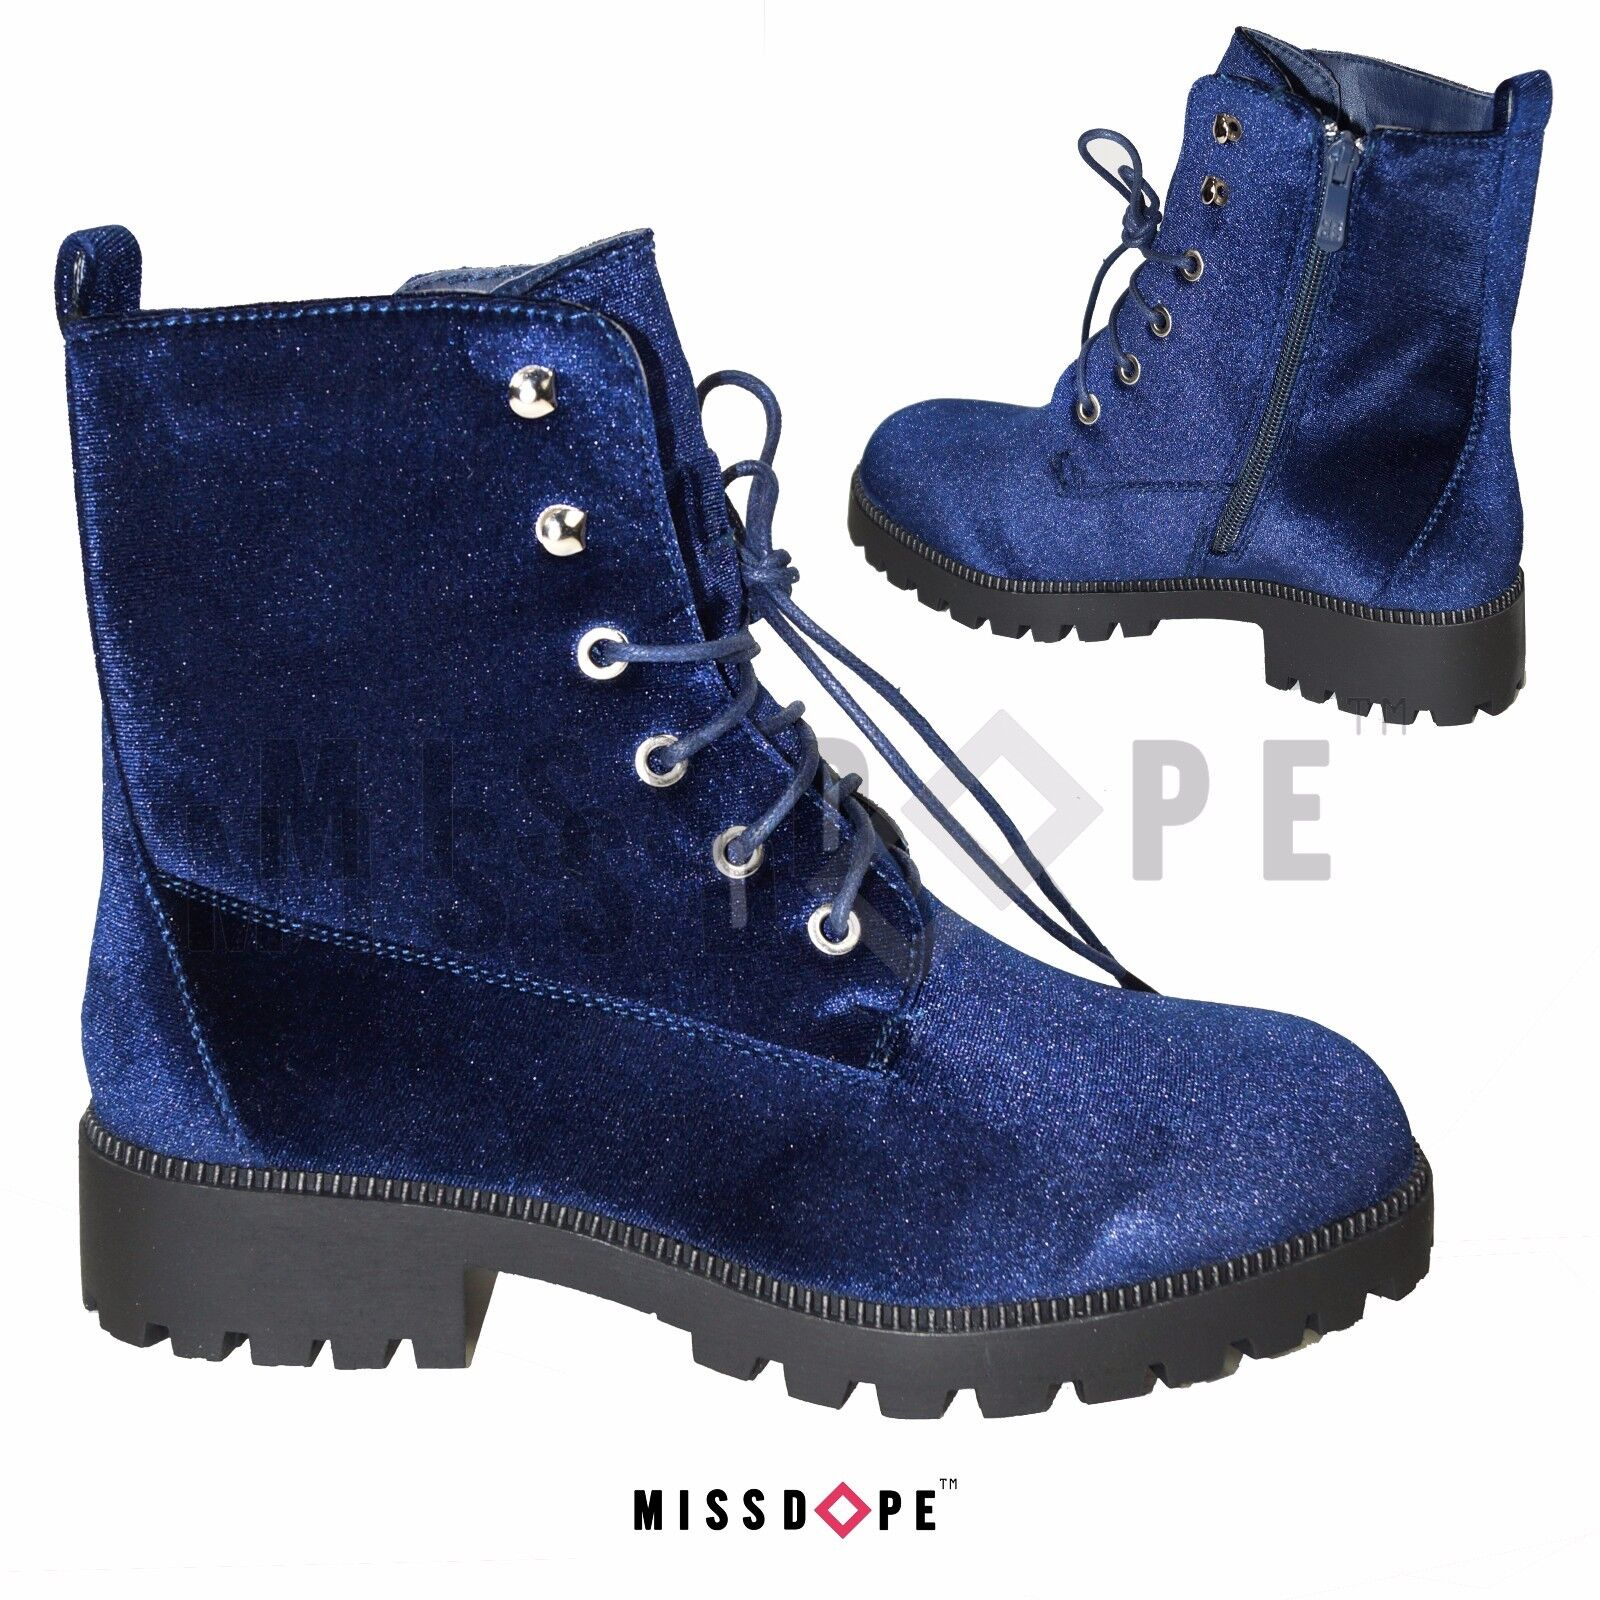 NEW VELVET NAVY BOOTS WOMENS ANKLE GOTH PUNK LACE UP BIKER CRUSHED blueE SHOES